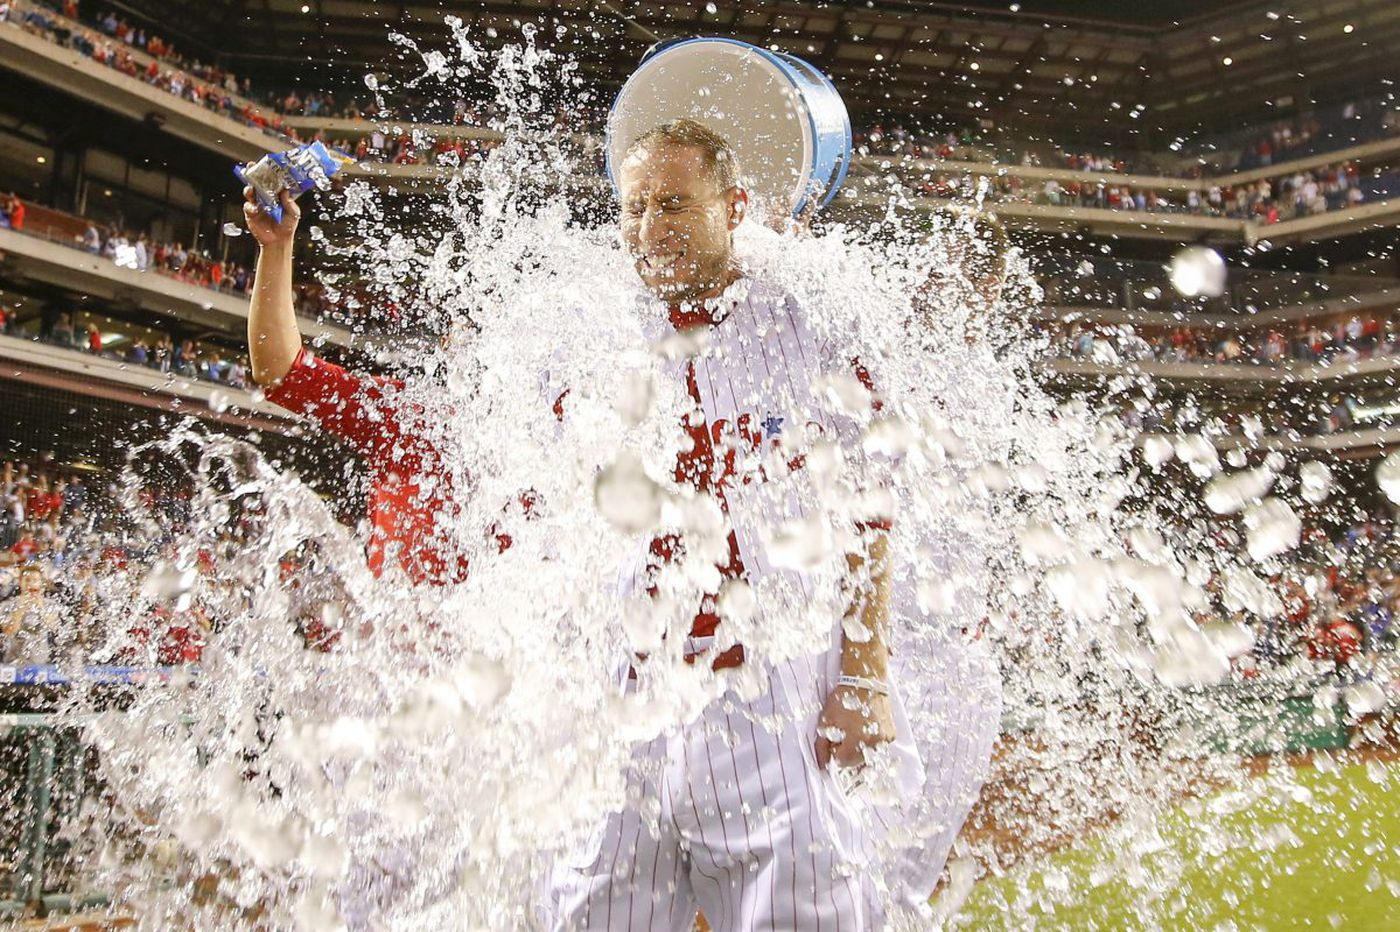 Ty Kelly's walk-off single lifts Phillies over Braves, 4-3 in 11 innings